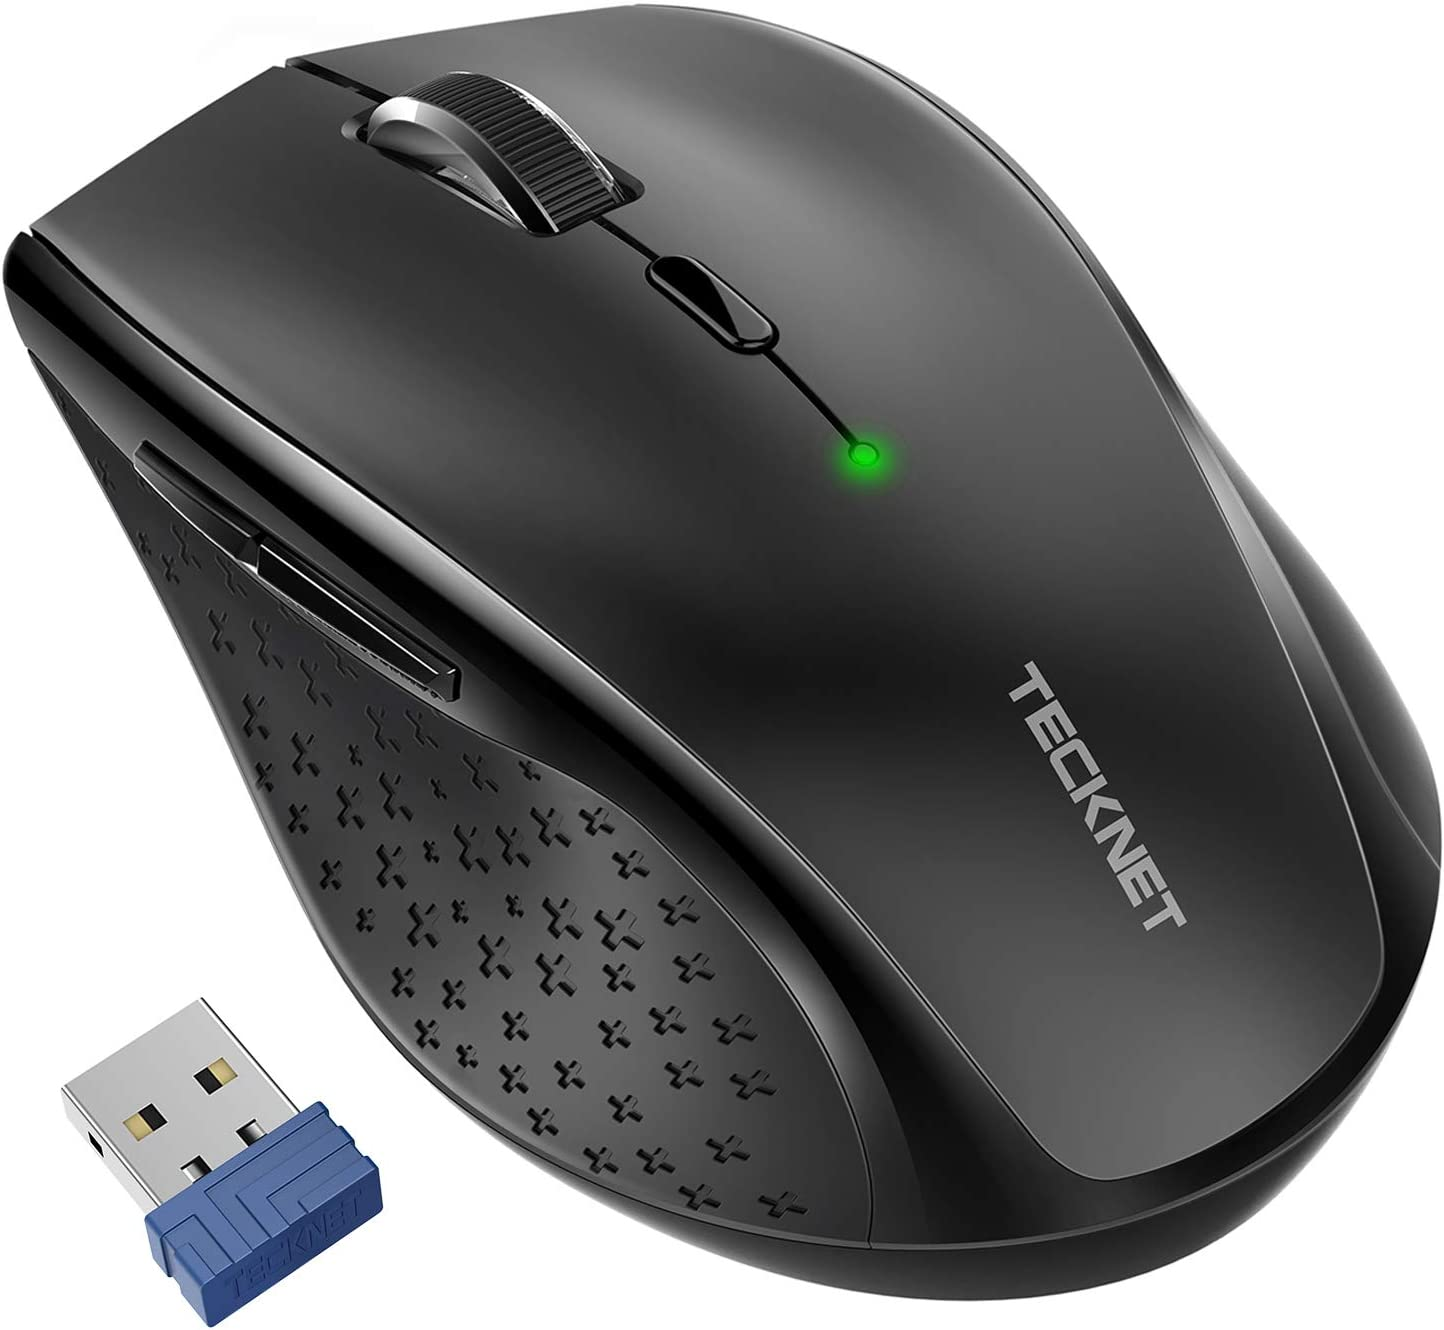 TECKNET Classic 2.4G Portable Optical Wireless Mouse with USB Nano Receiver for Notebook,PC,Laptop,Computer,6 Buttons,30 Months Battery Life,4800 DPI,6 Adjustment Levels (Black)